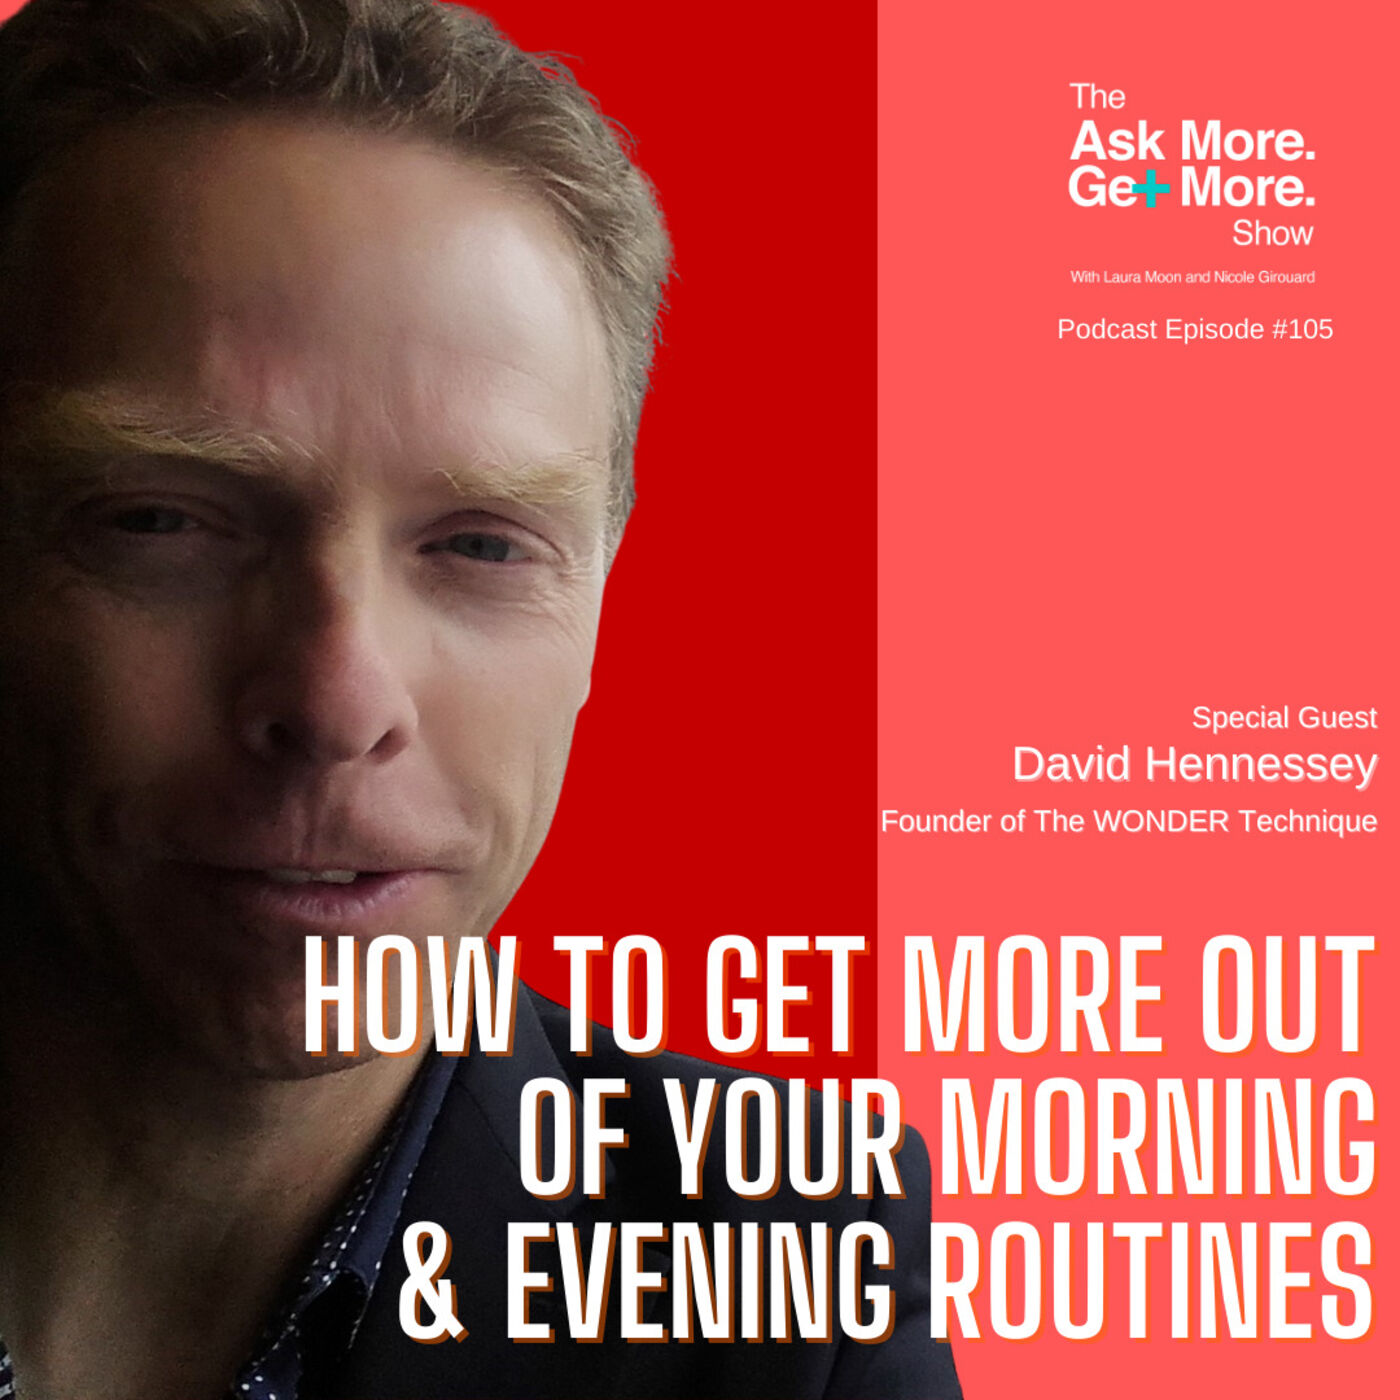 Level Up Your Morning & Evening Routines with WONDER Technique [David Hennessey]